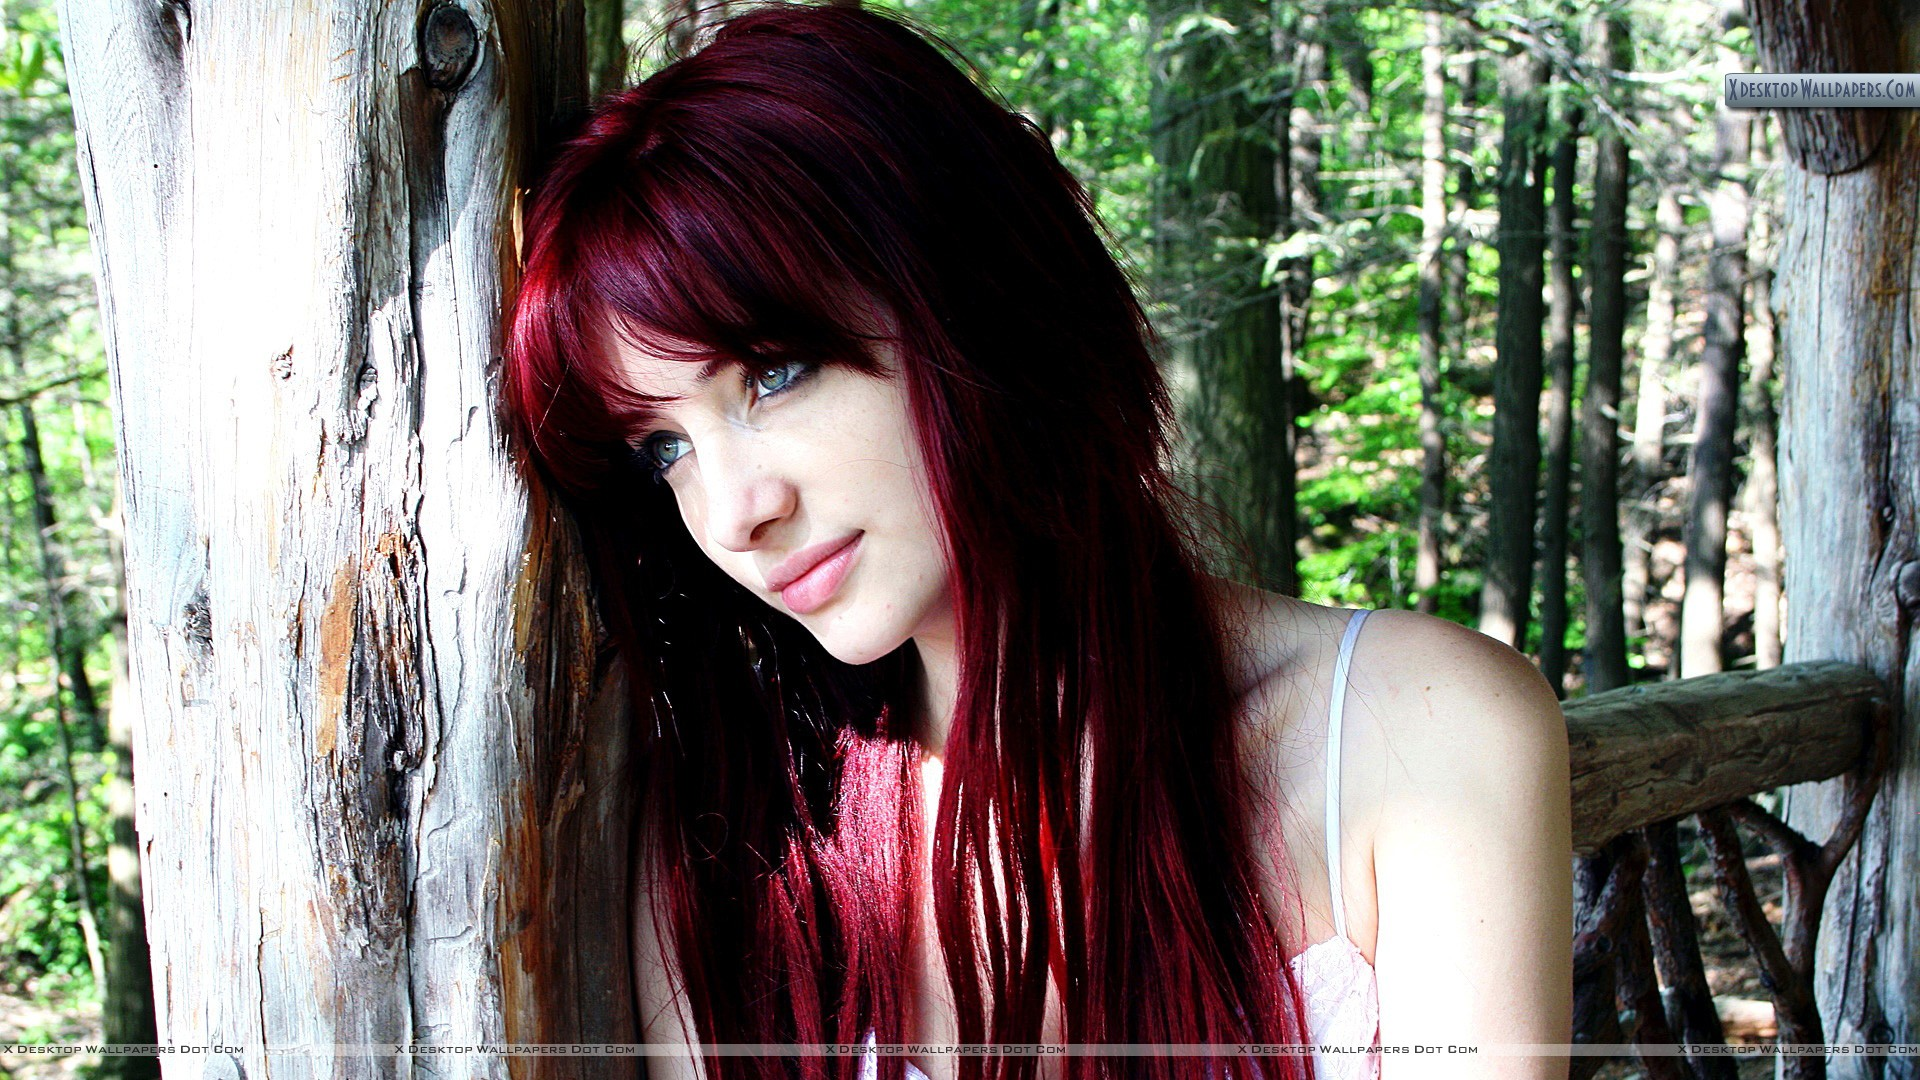 susan coffey wallpapers, photos & images in hd